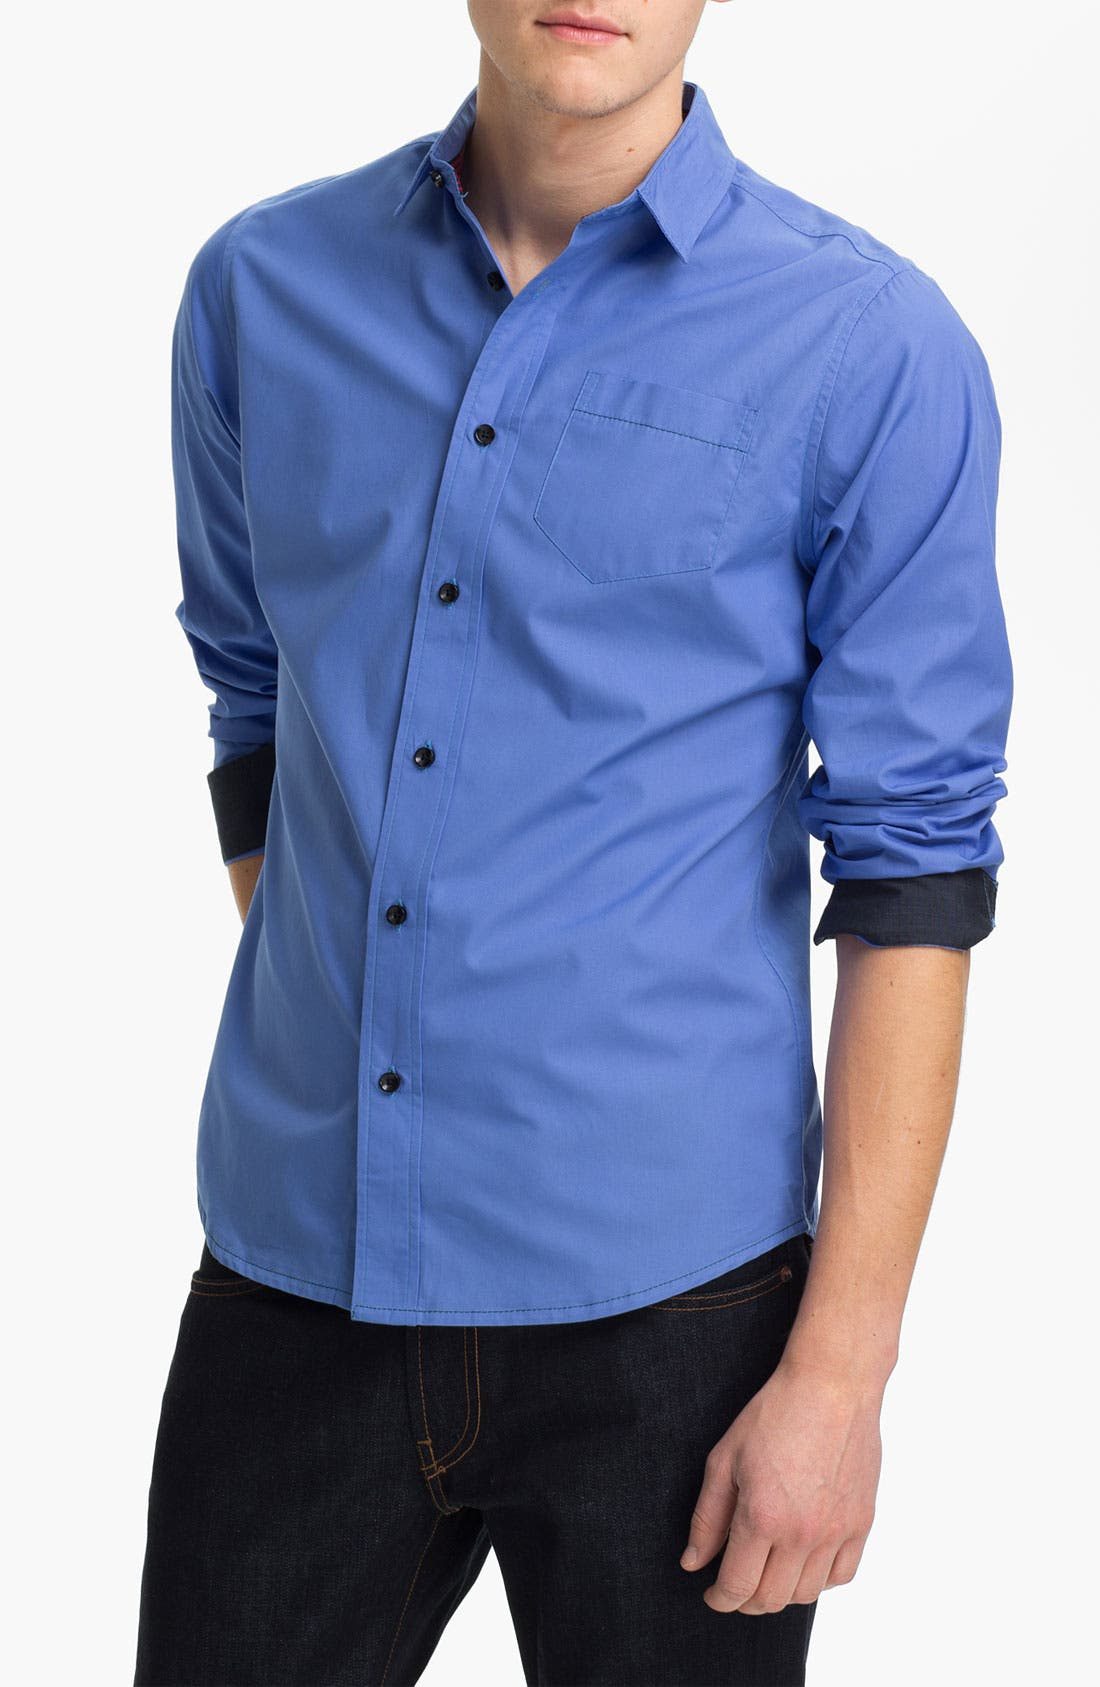 Alternate Image 1 Selected - Descendant of Thieves Woven Shirt